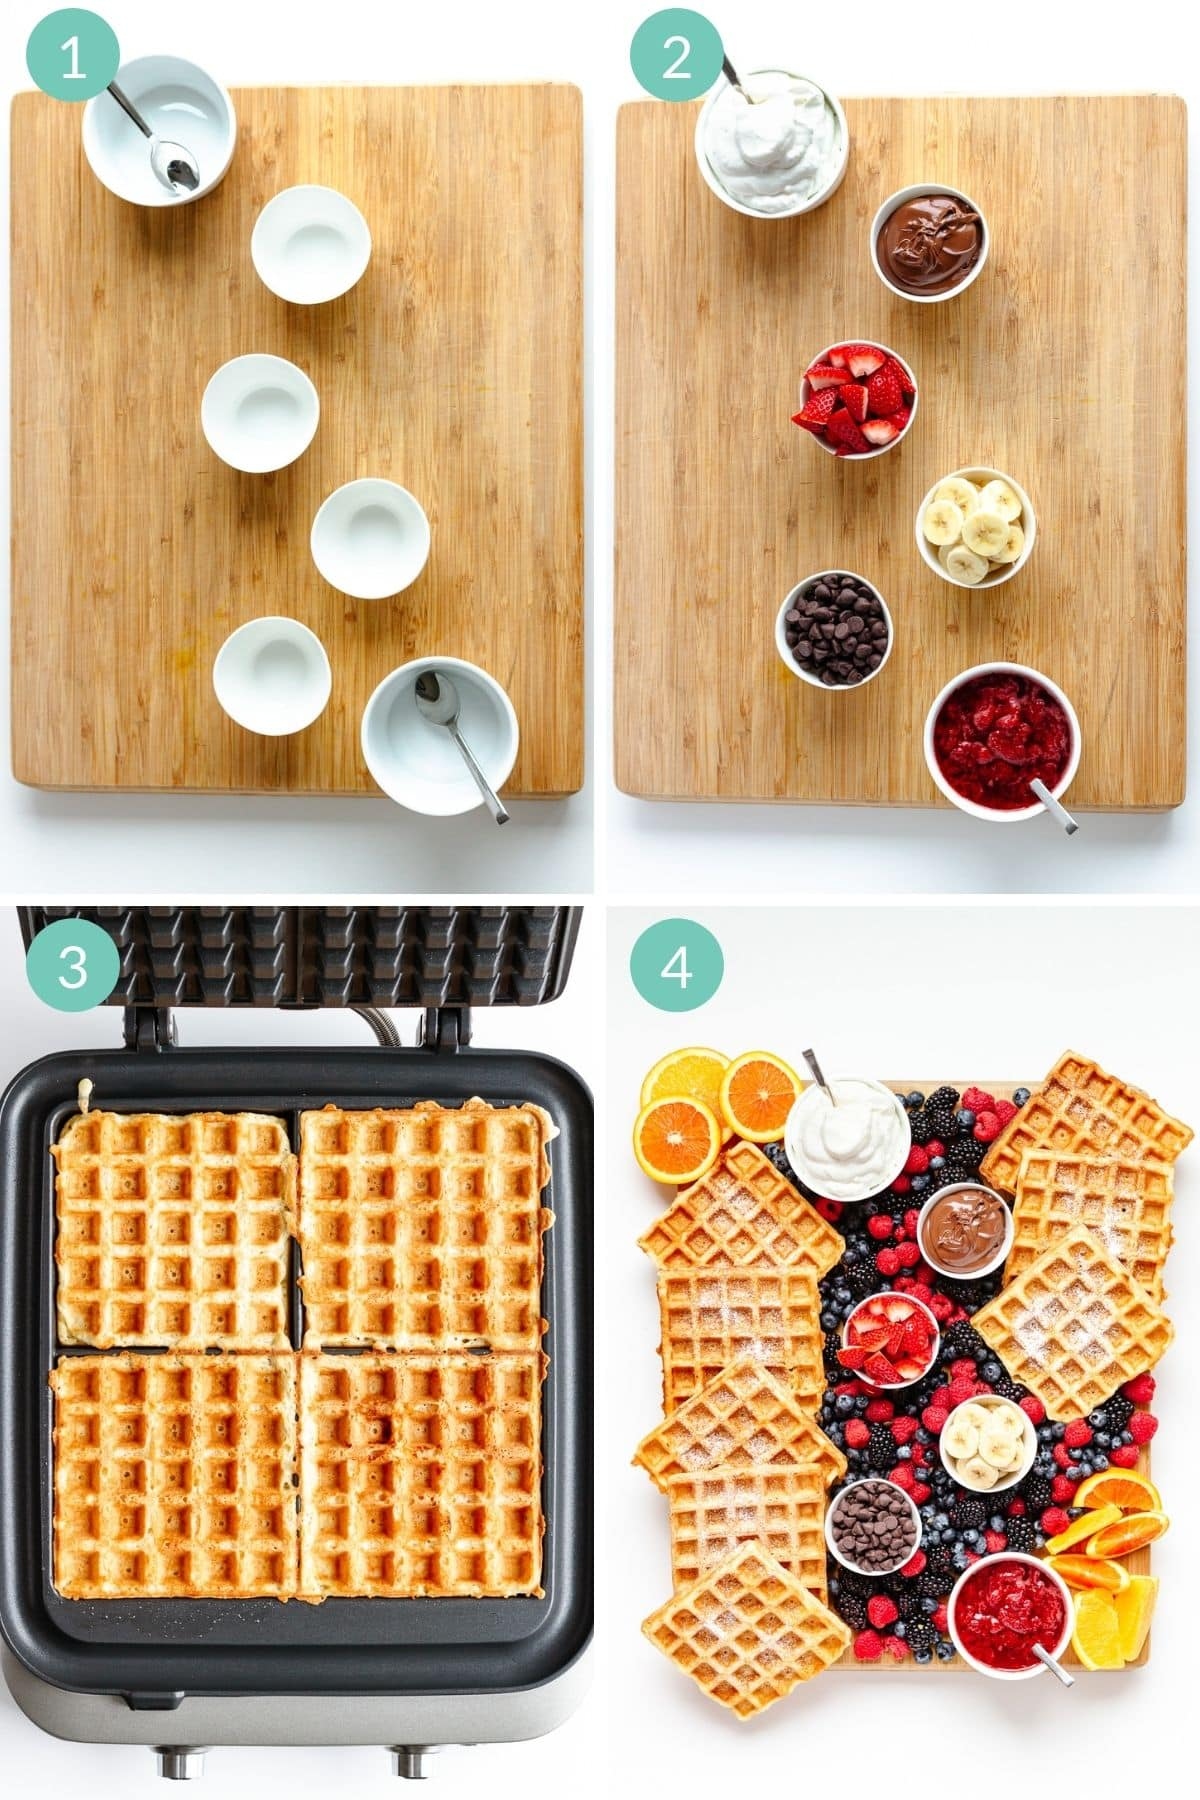 Photo collage showing how to build a waffle breakfast board step by step.